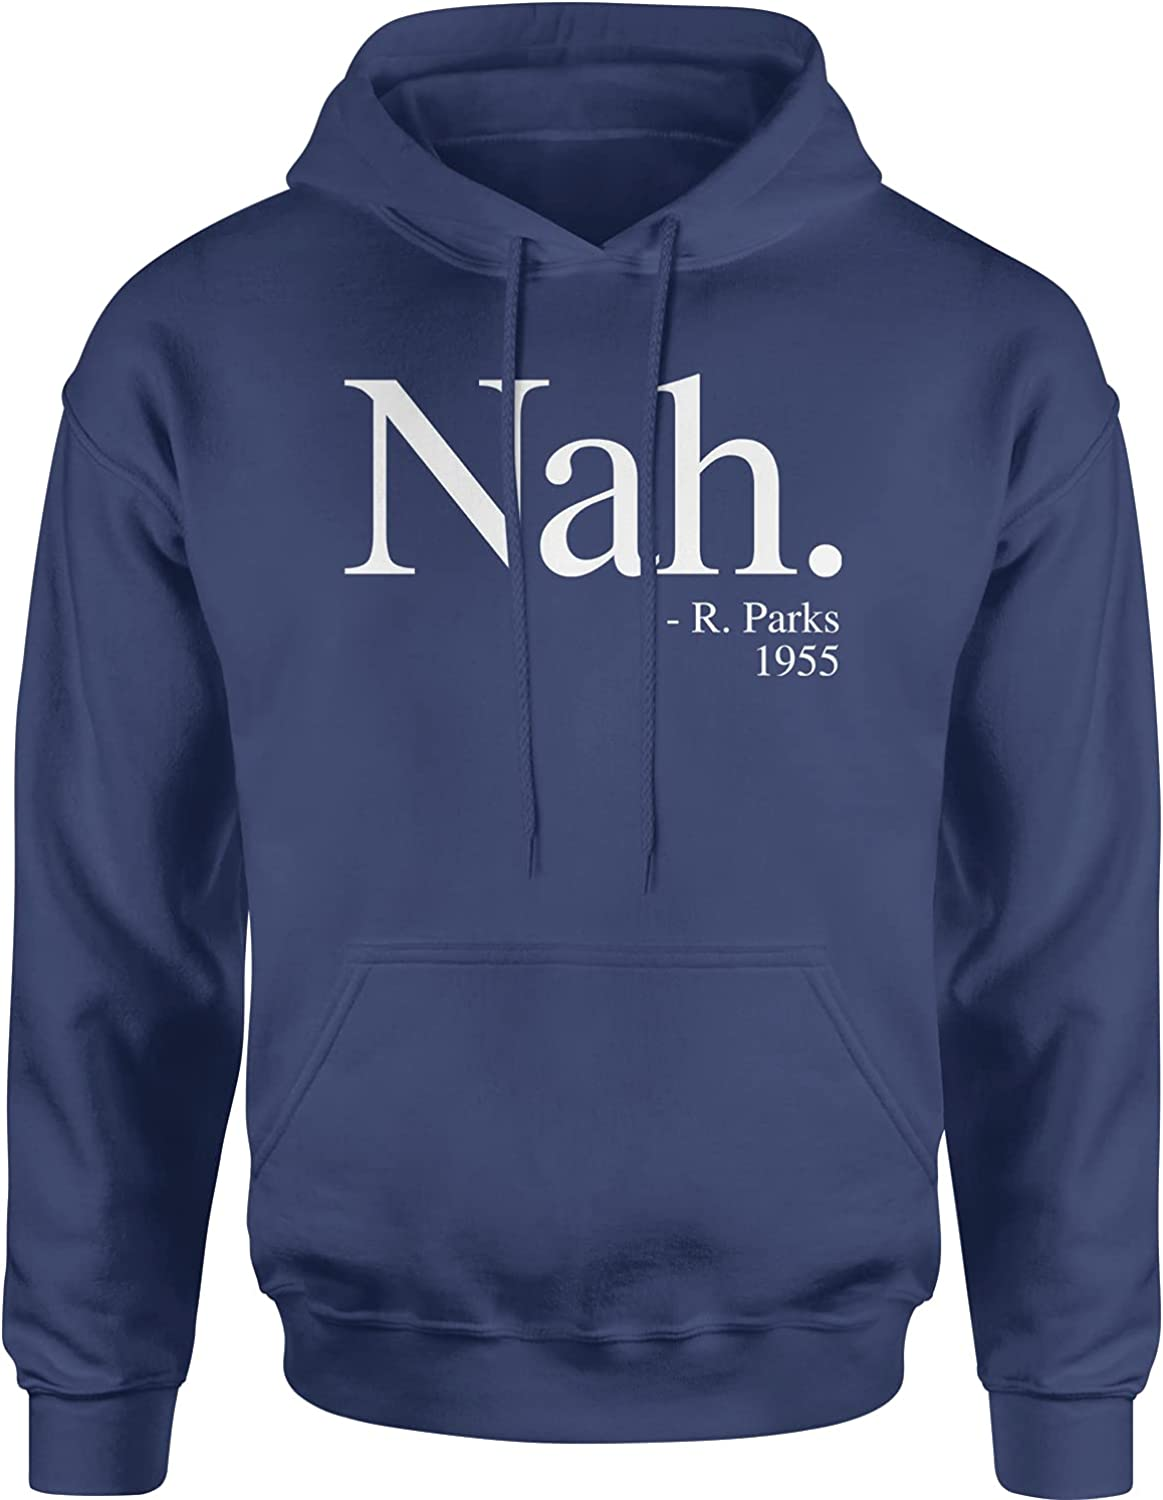 Expression Many popular brands Tees 2021 new Nah Parks Quote Unisex Adult Hoodie 1955